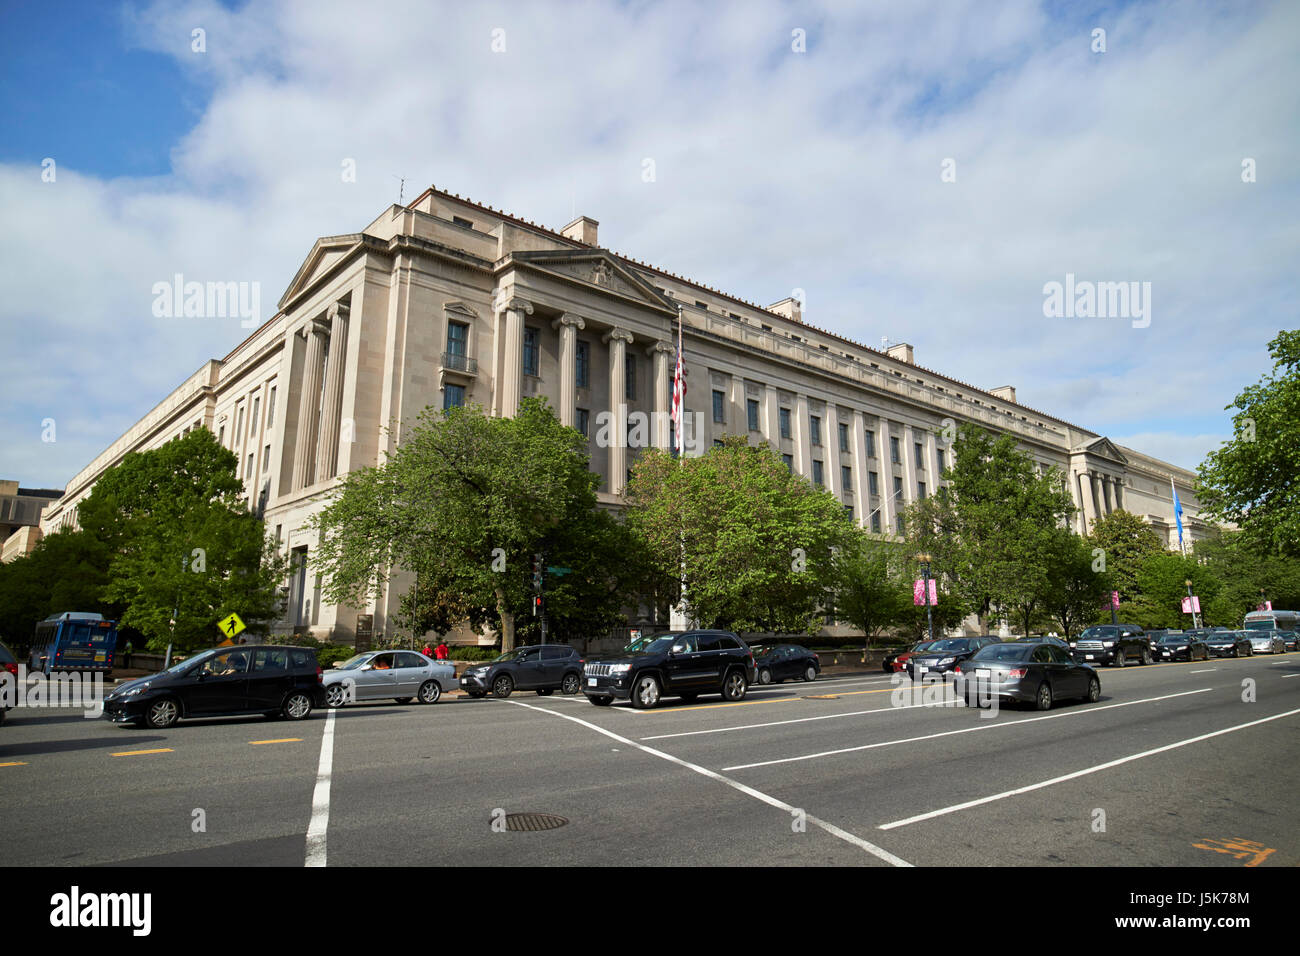 robert f kennedy department of justice building federal triangle Washington DC USA - Stock Image